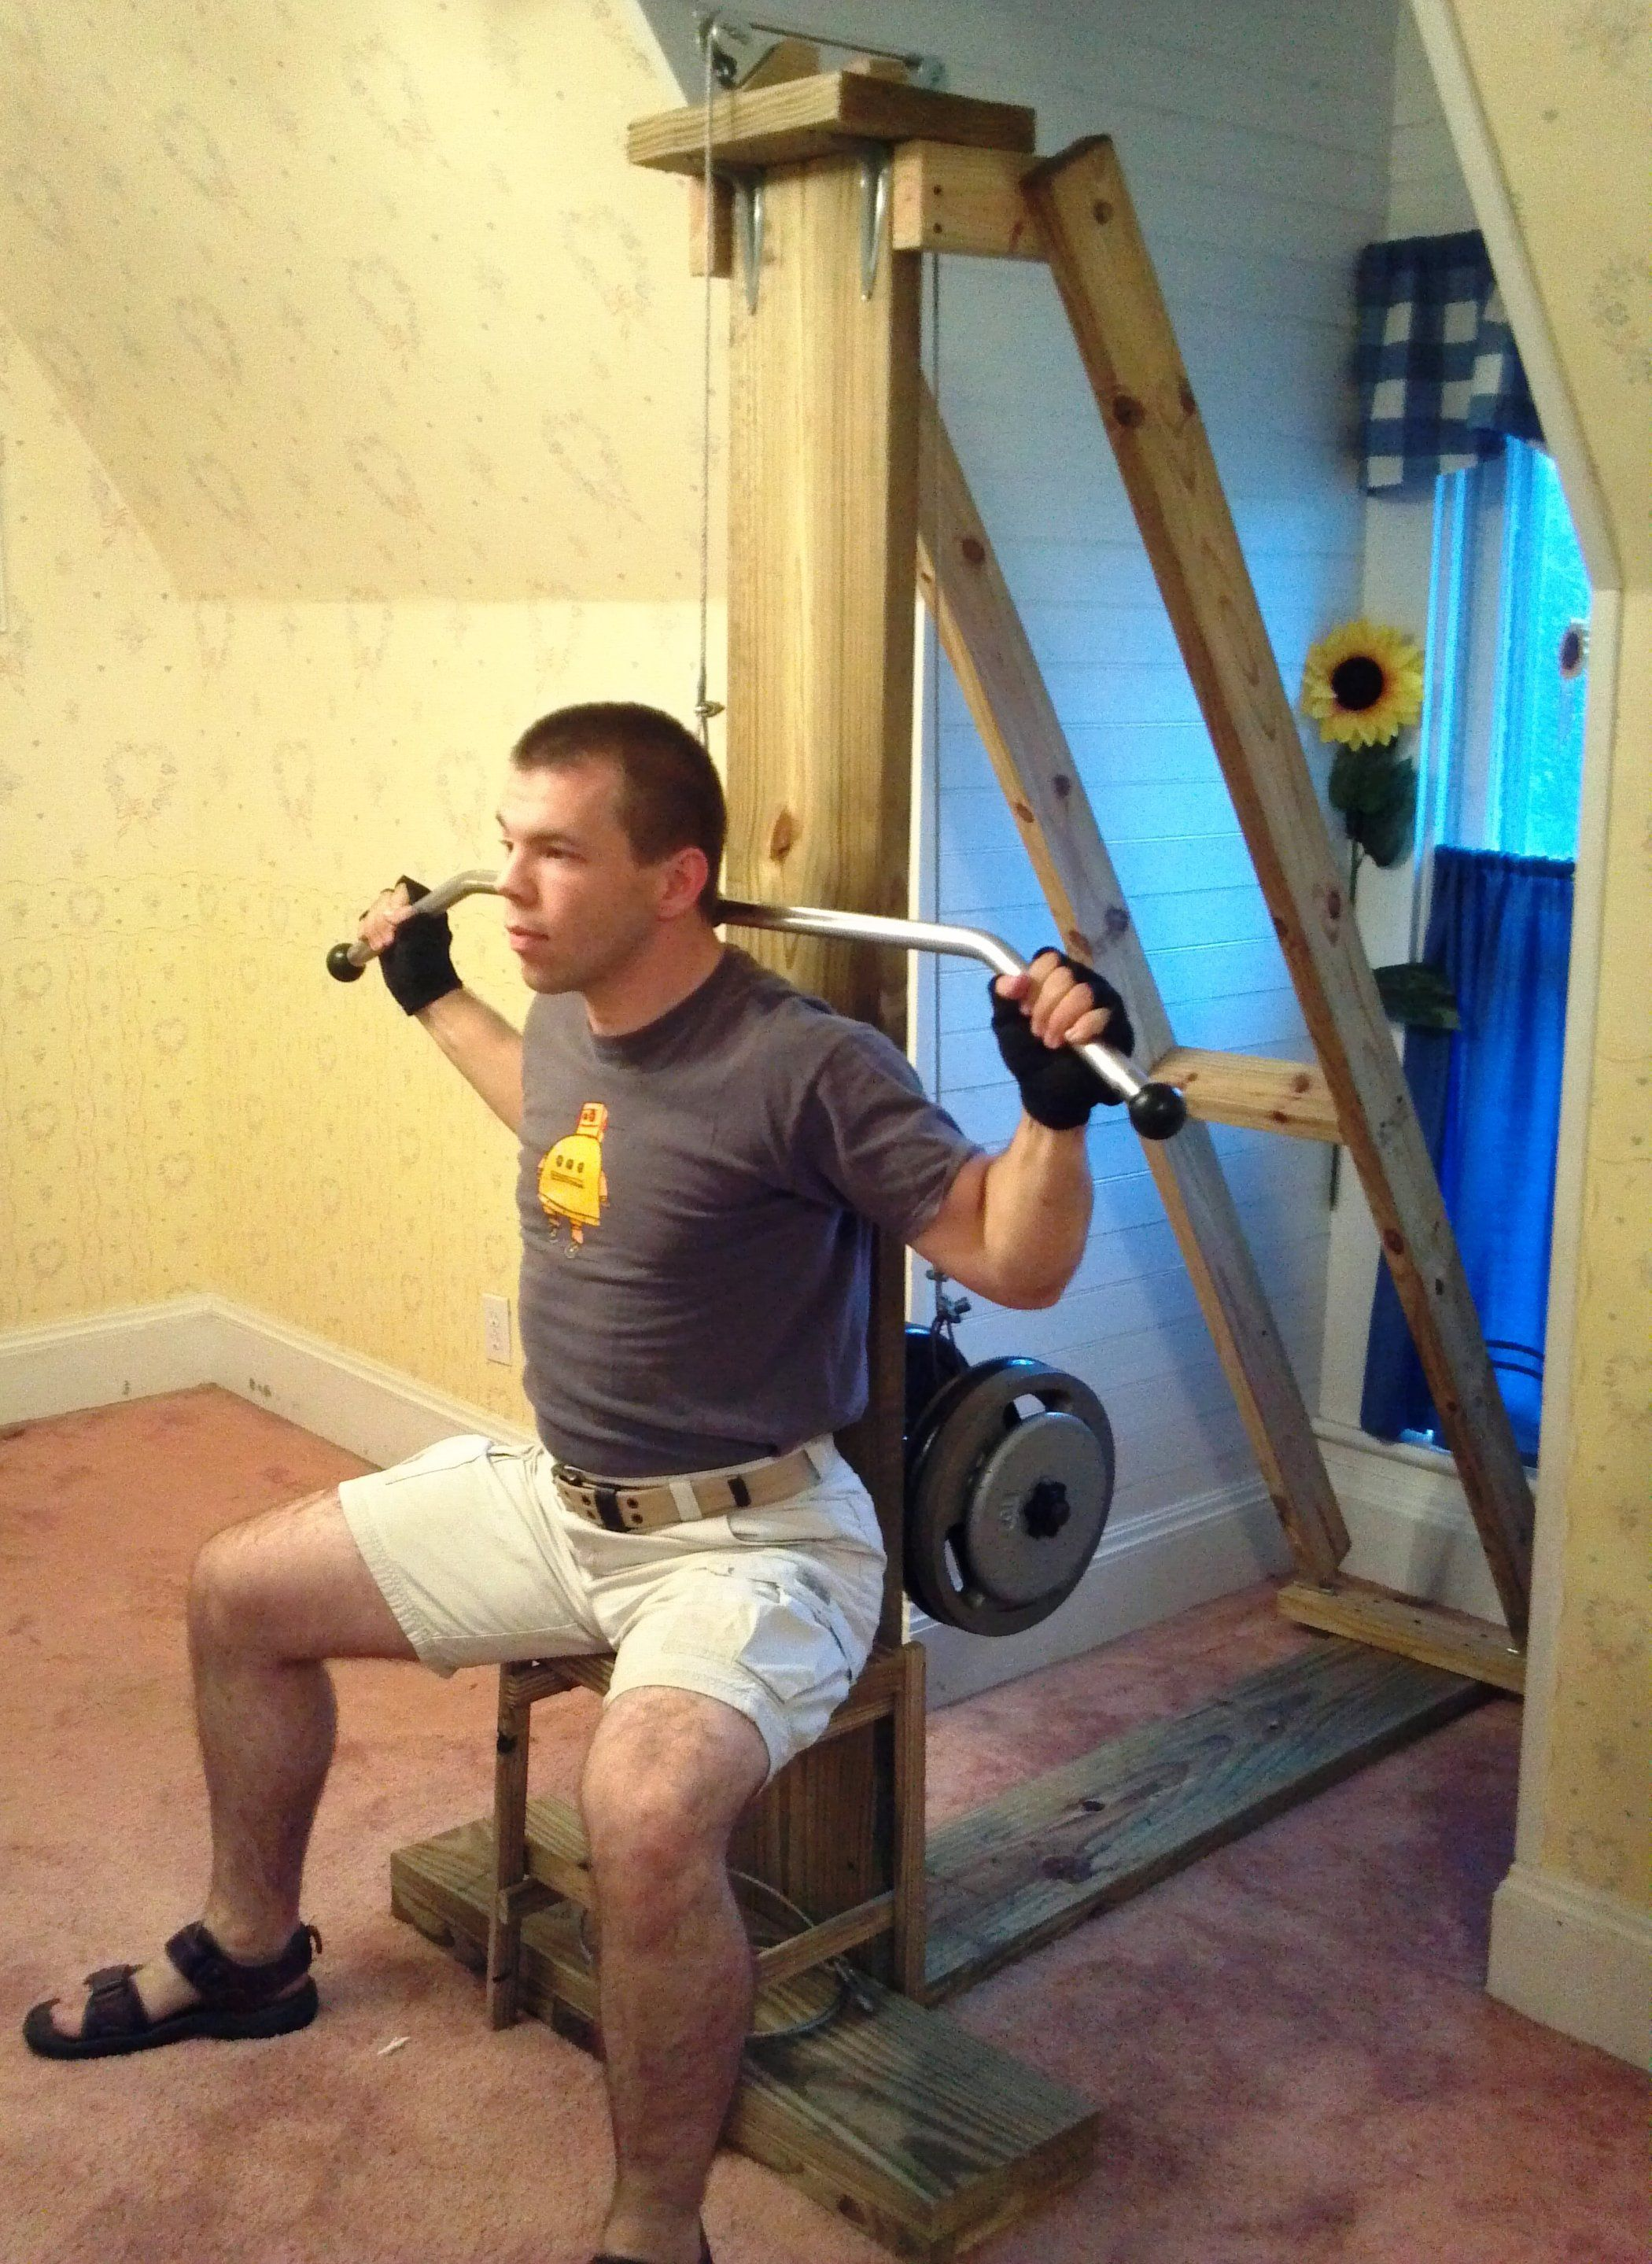 Cable exercise machine at home gym weight training